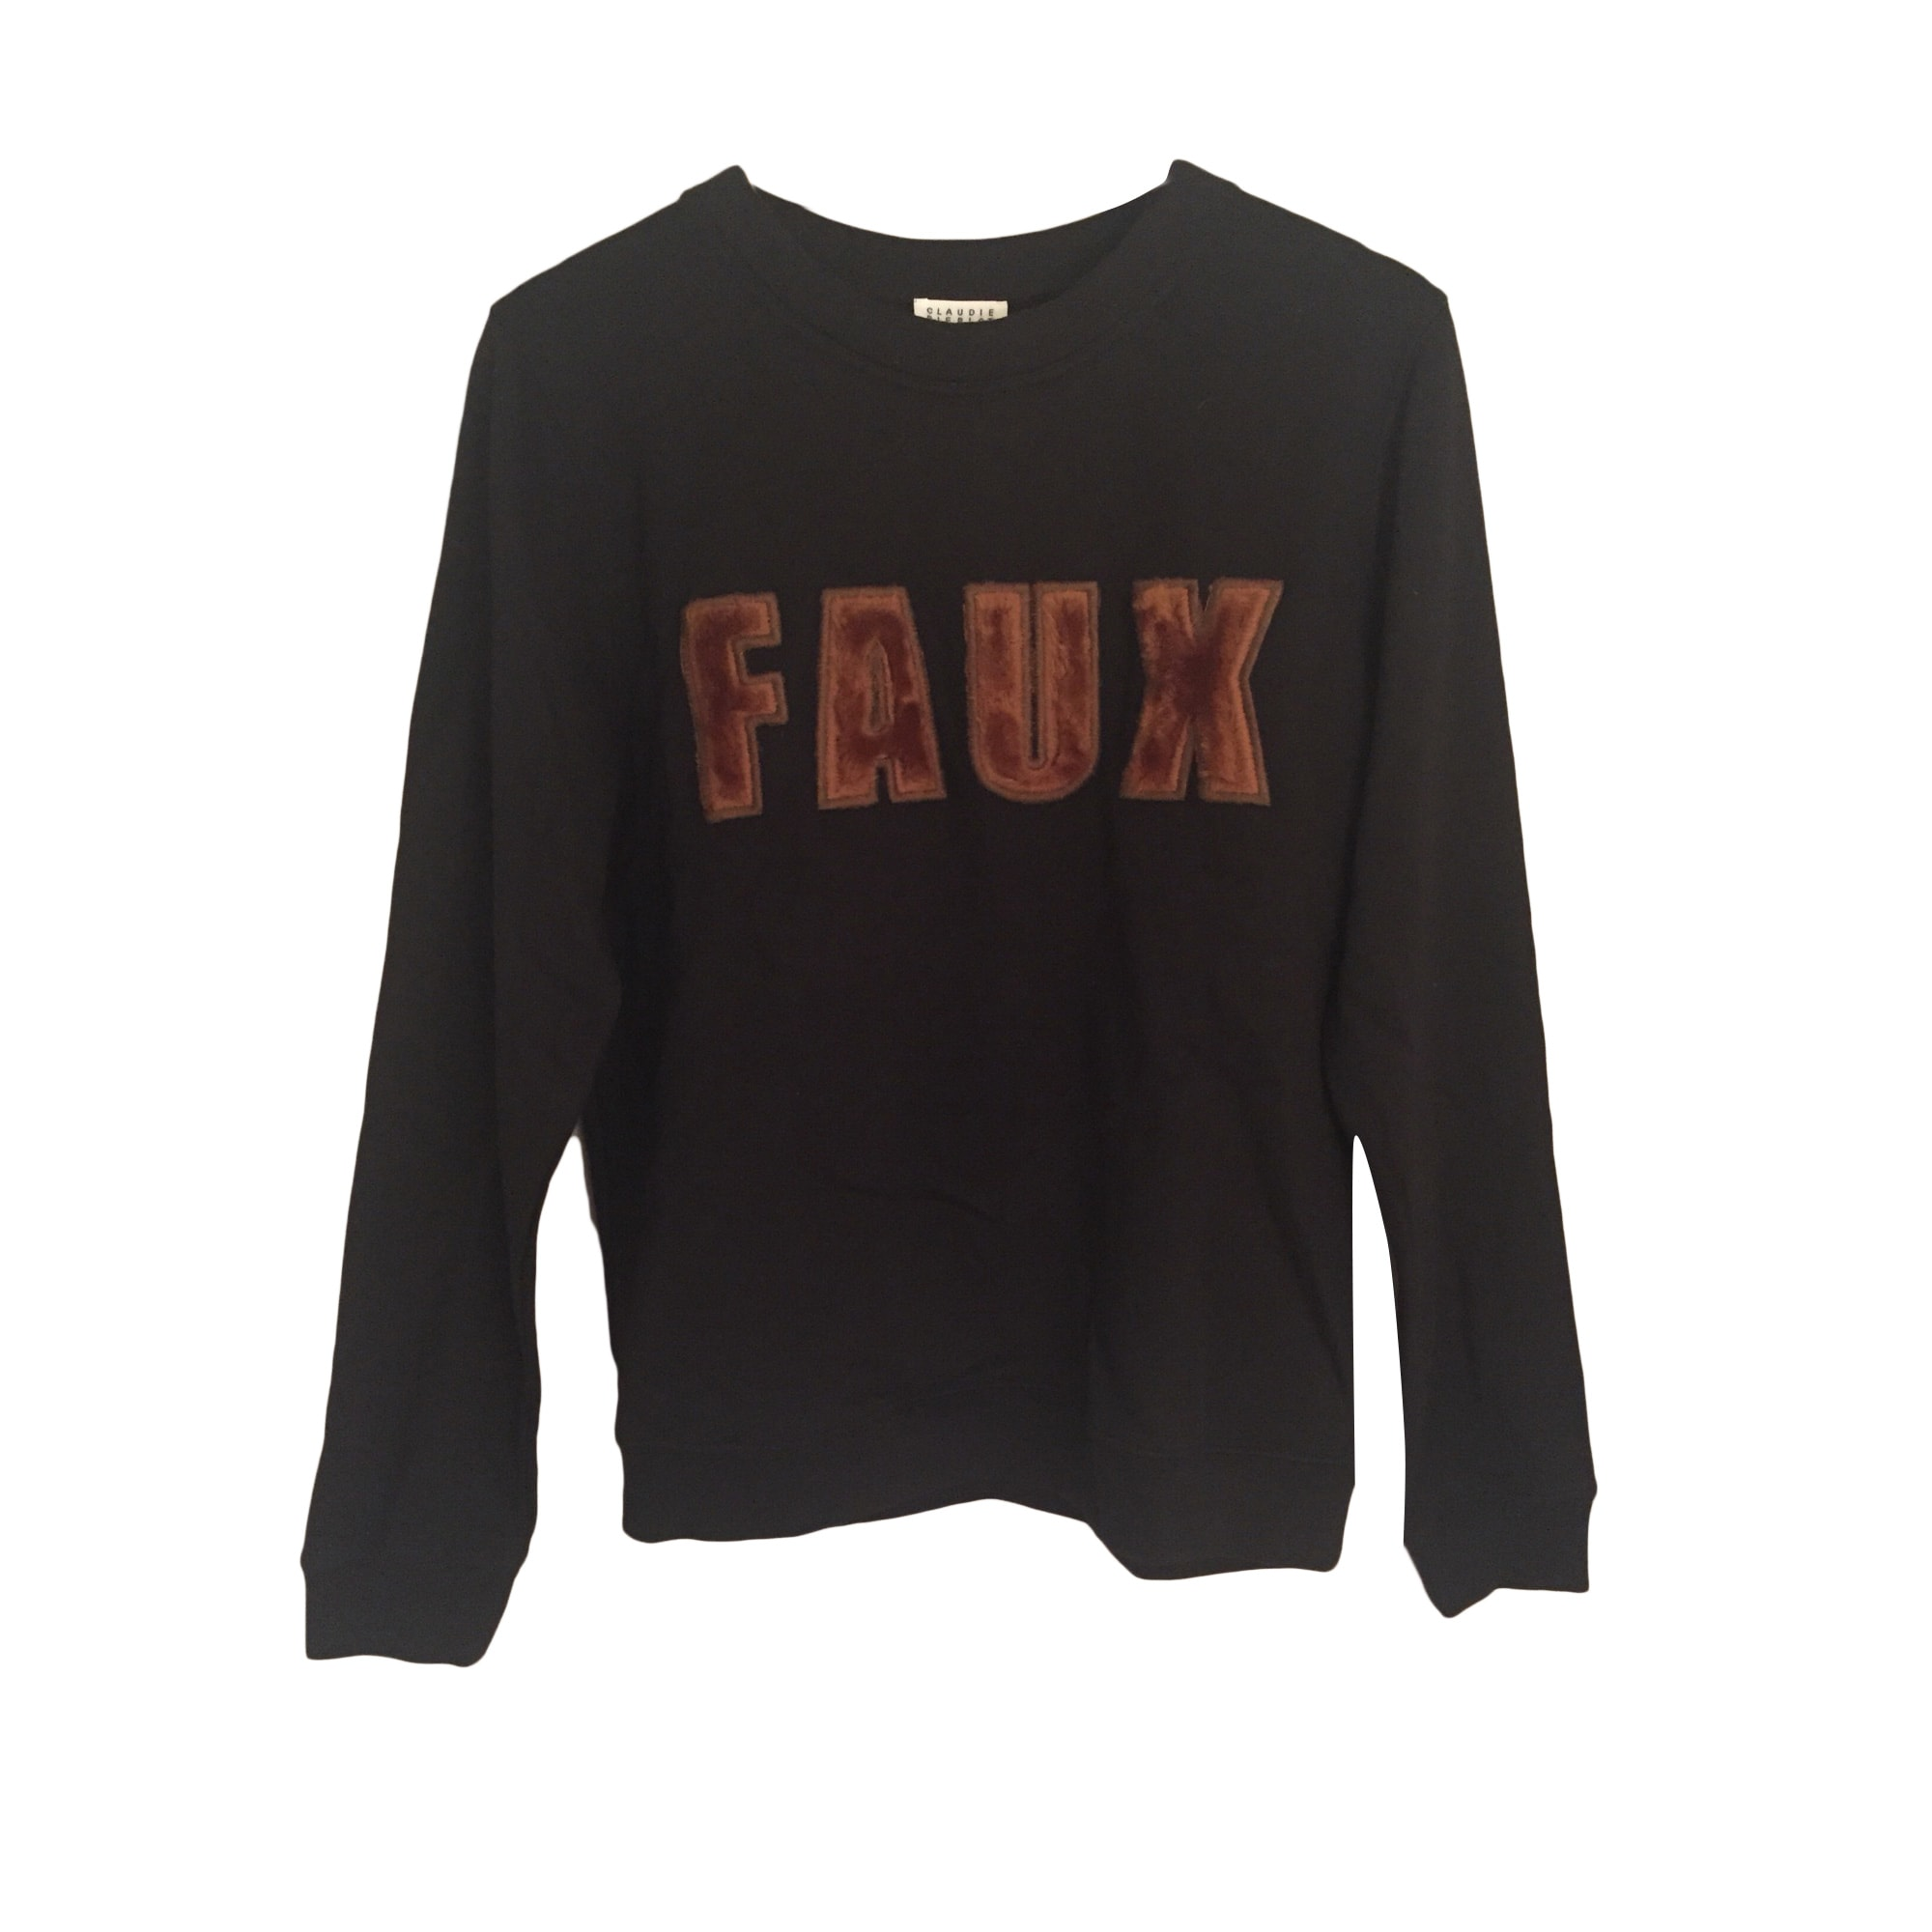 Sweatshirt CLAUDIE PIERLOT Black